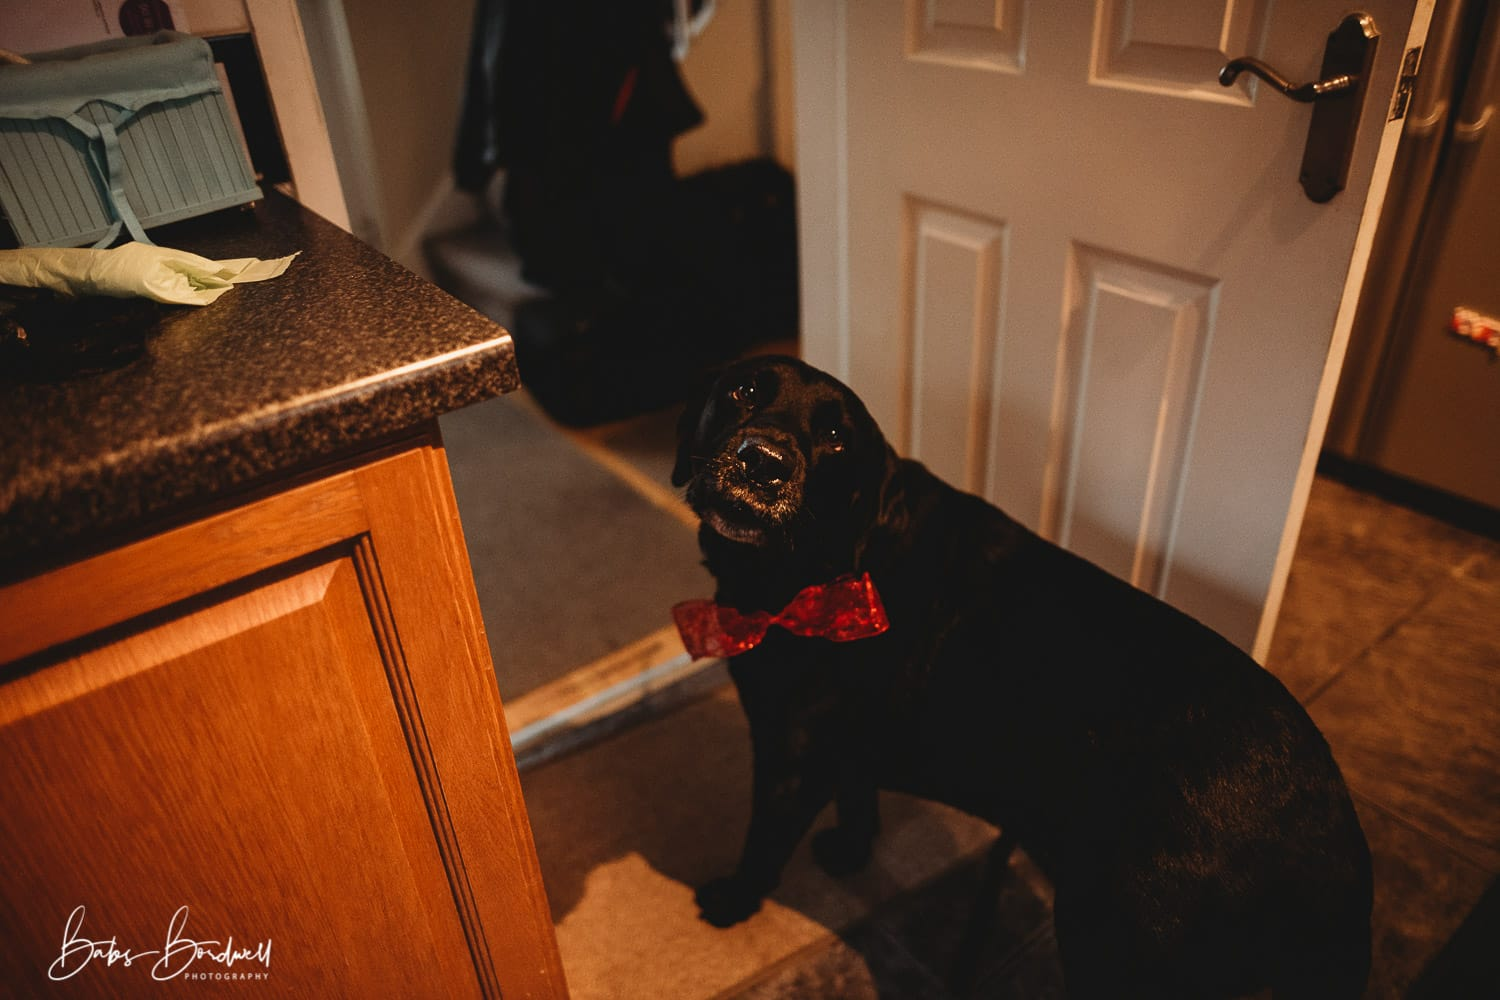 dog with a red bow in the kitchen